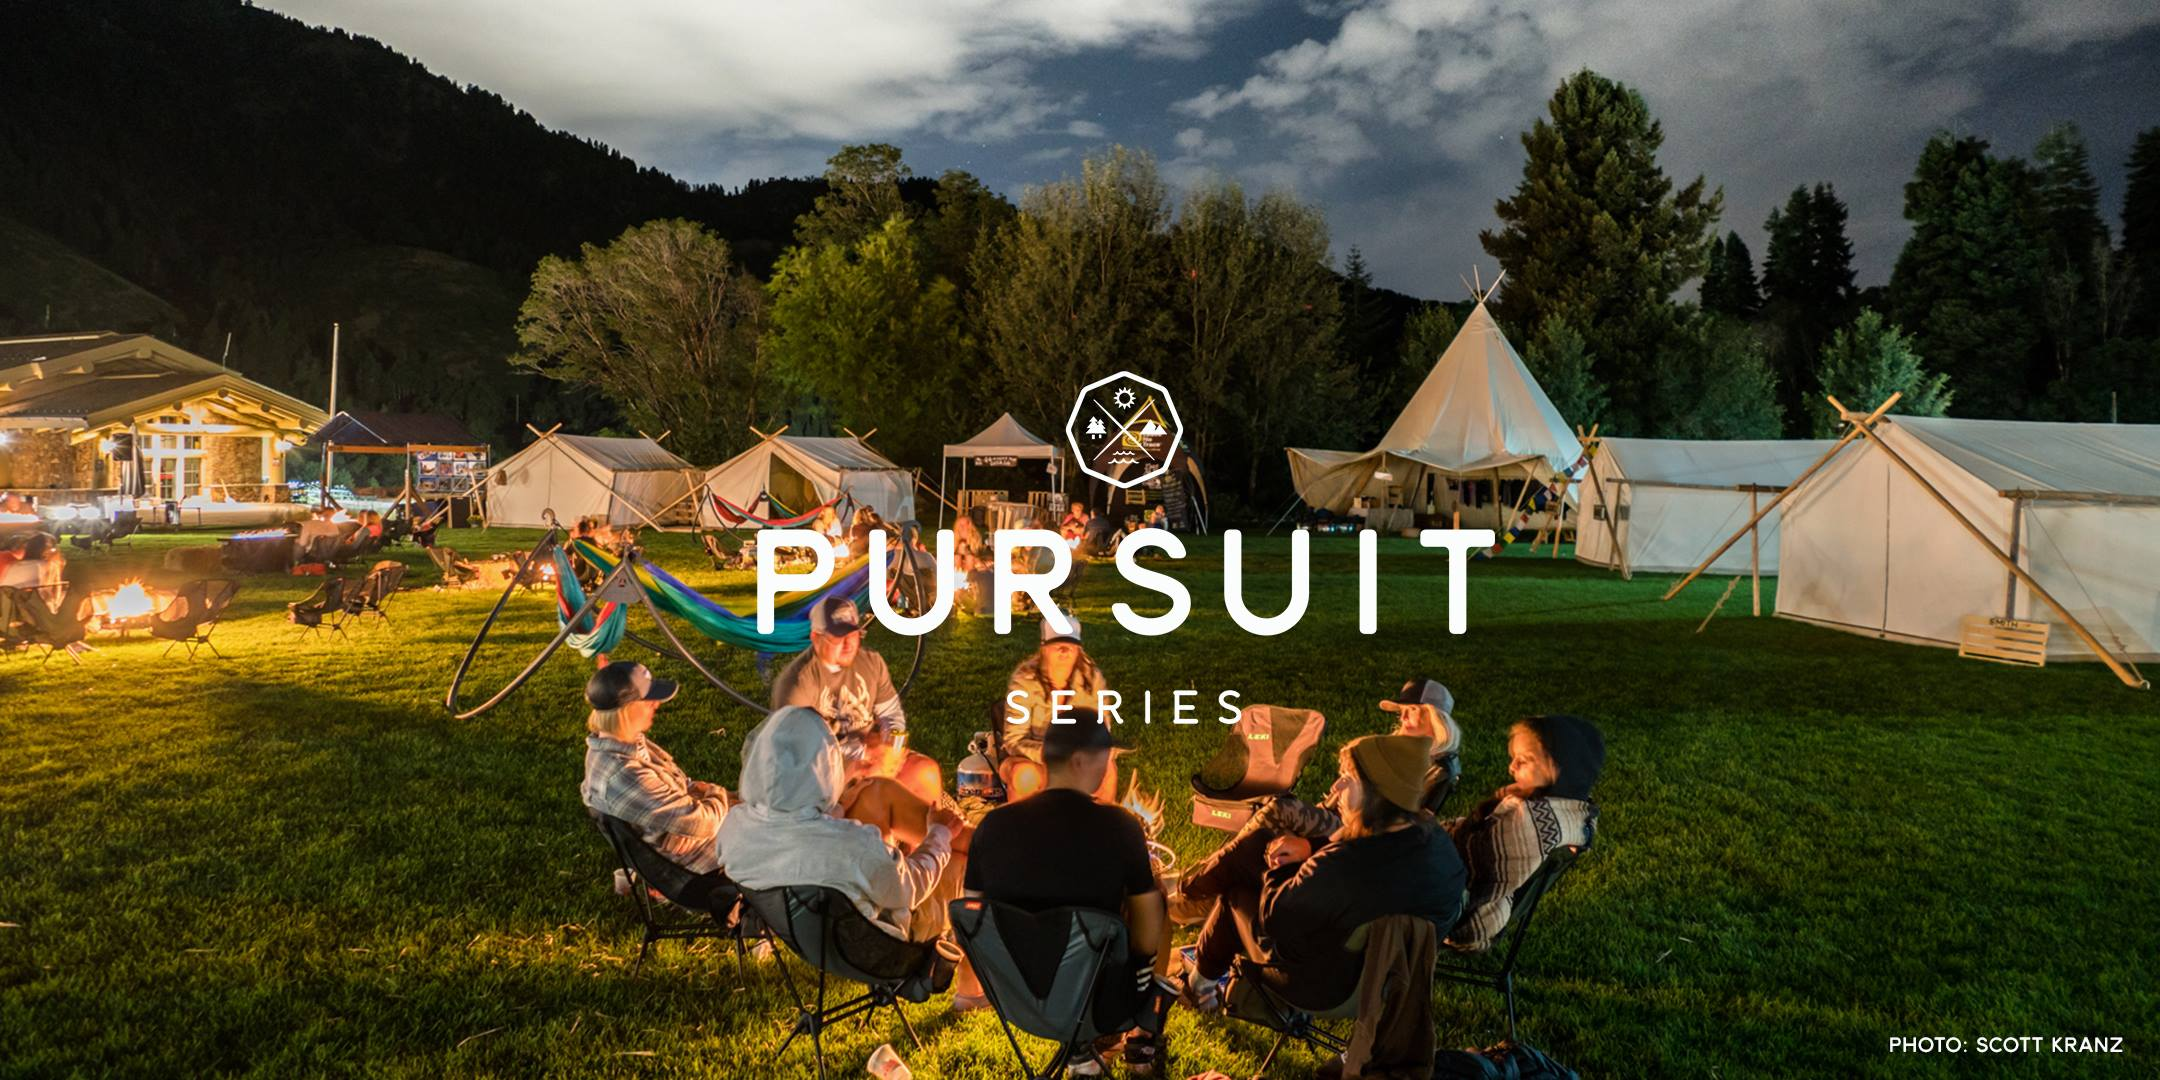 Pursuit Series 2018 Brings Much Needed Adventure To Pursuers